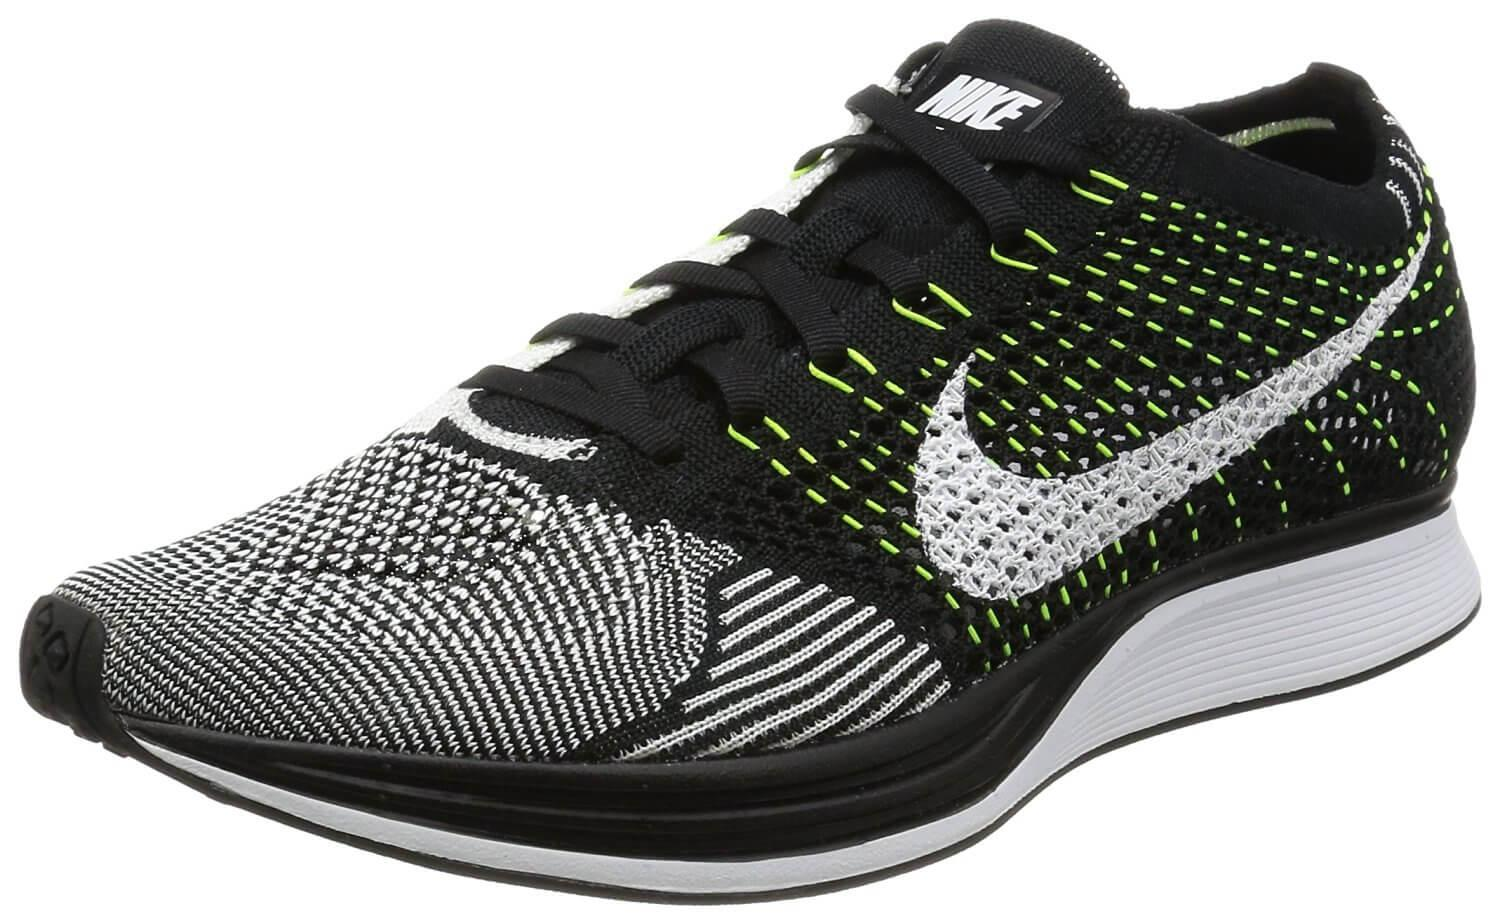 cheaper d11b6 b2b4c Nike Flyknit Racer Reviewed - To Buy or Not in Apr 2019